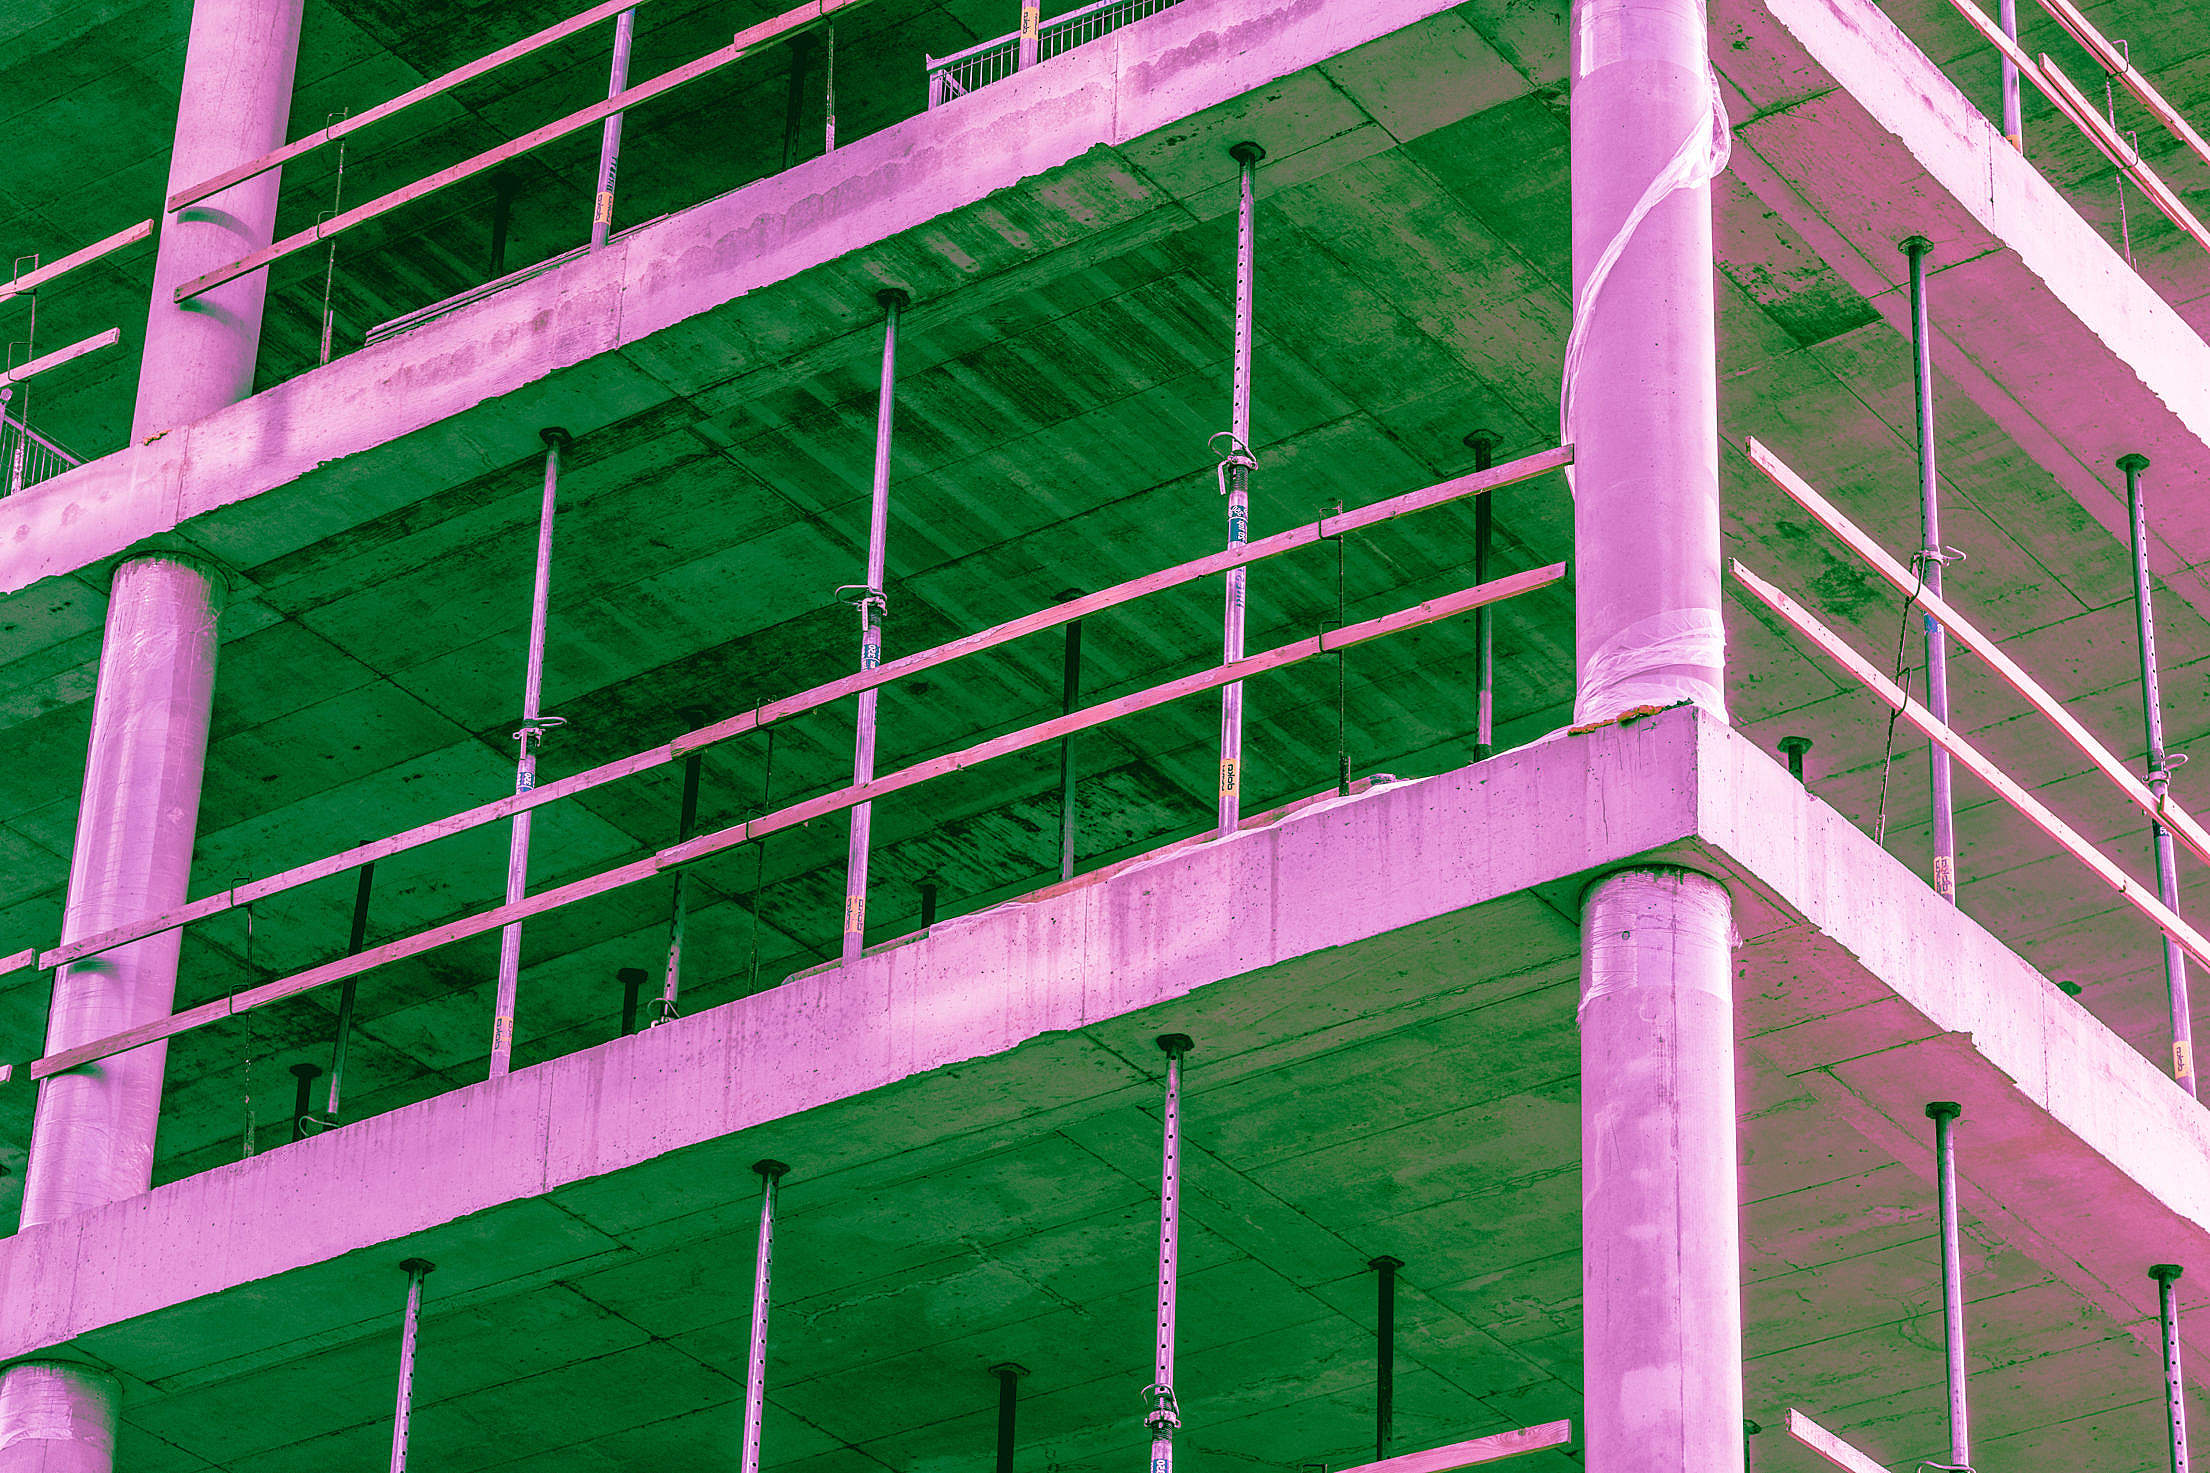 Construction Site Building Abstract Psychedelic Colors Free Stock Photo